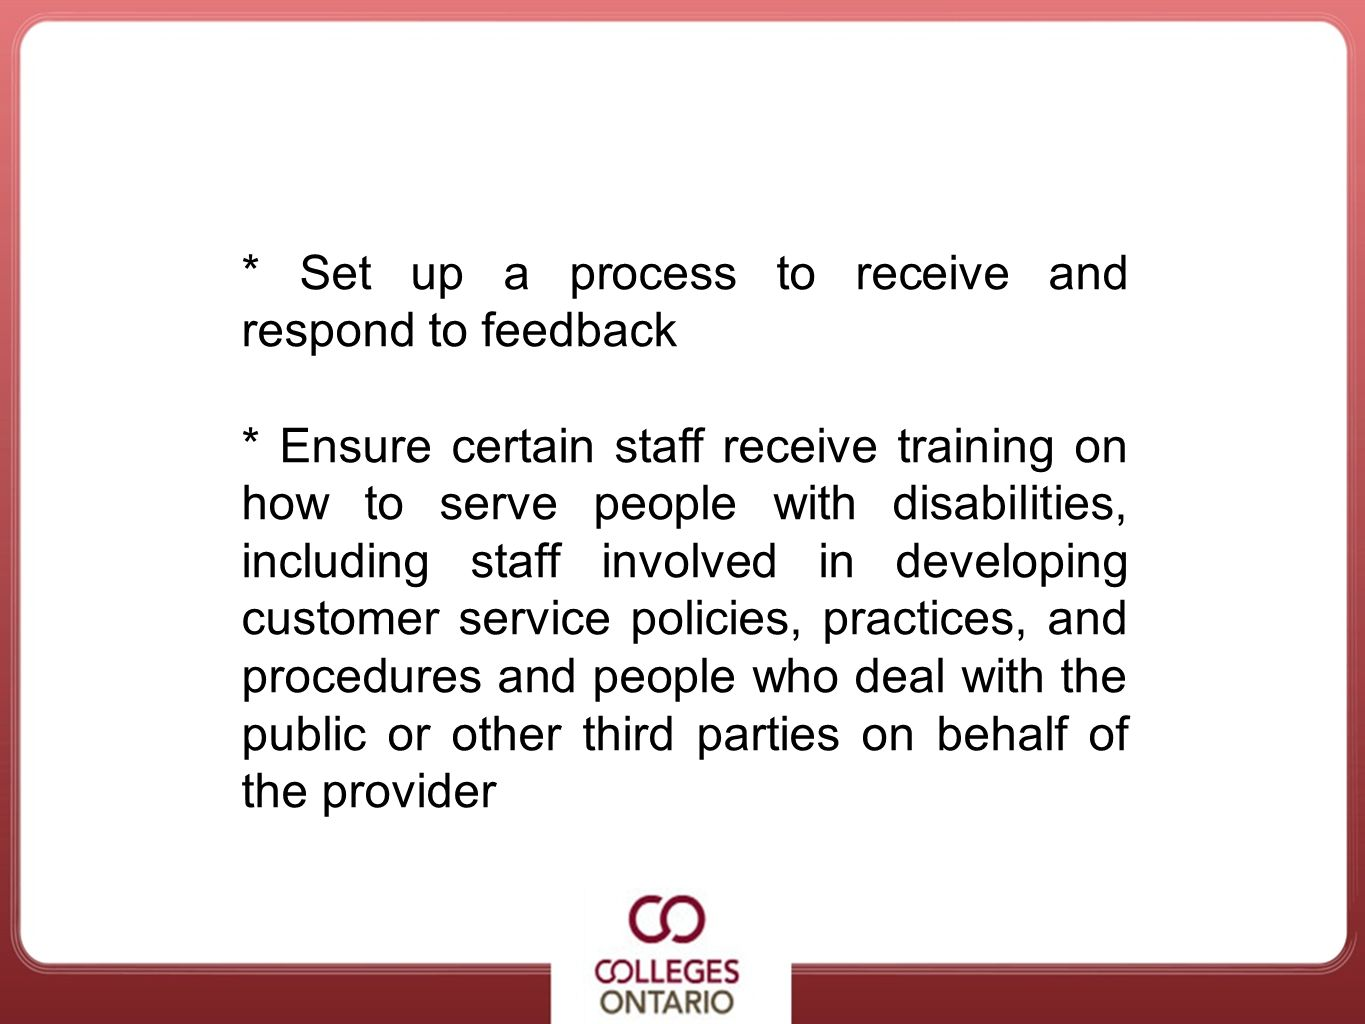 * Set up a process to receive and respond to feedback